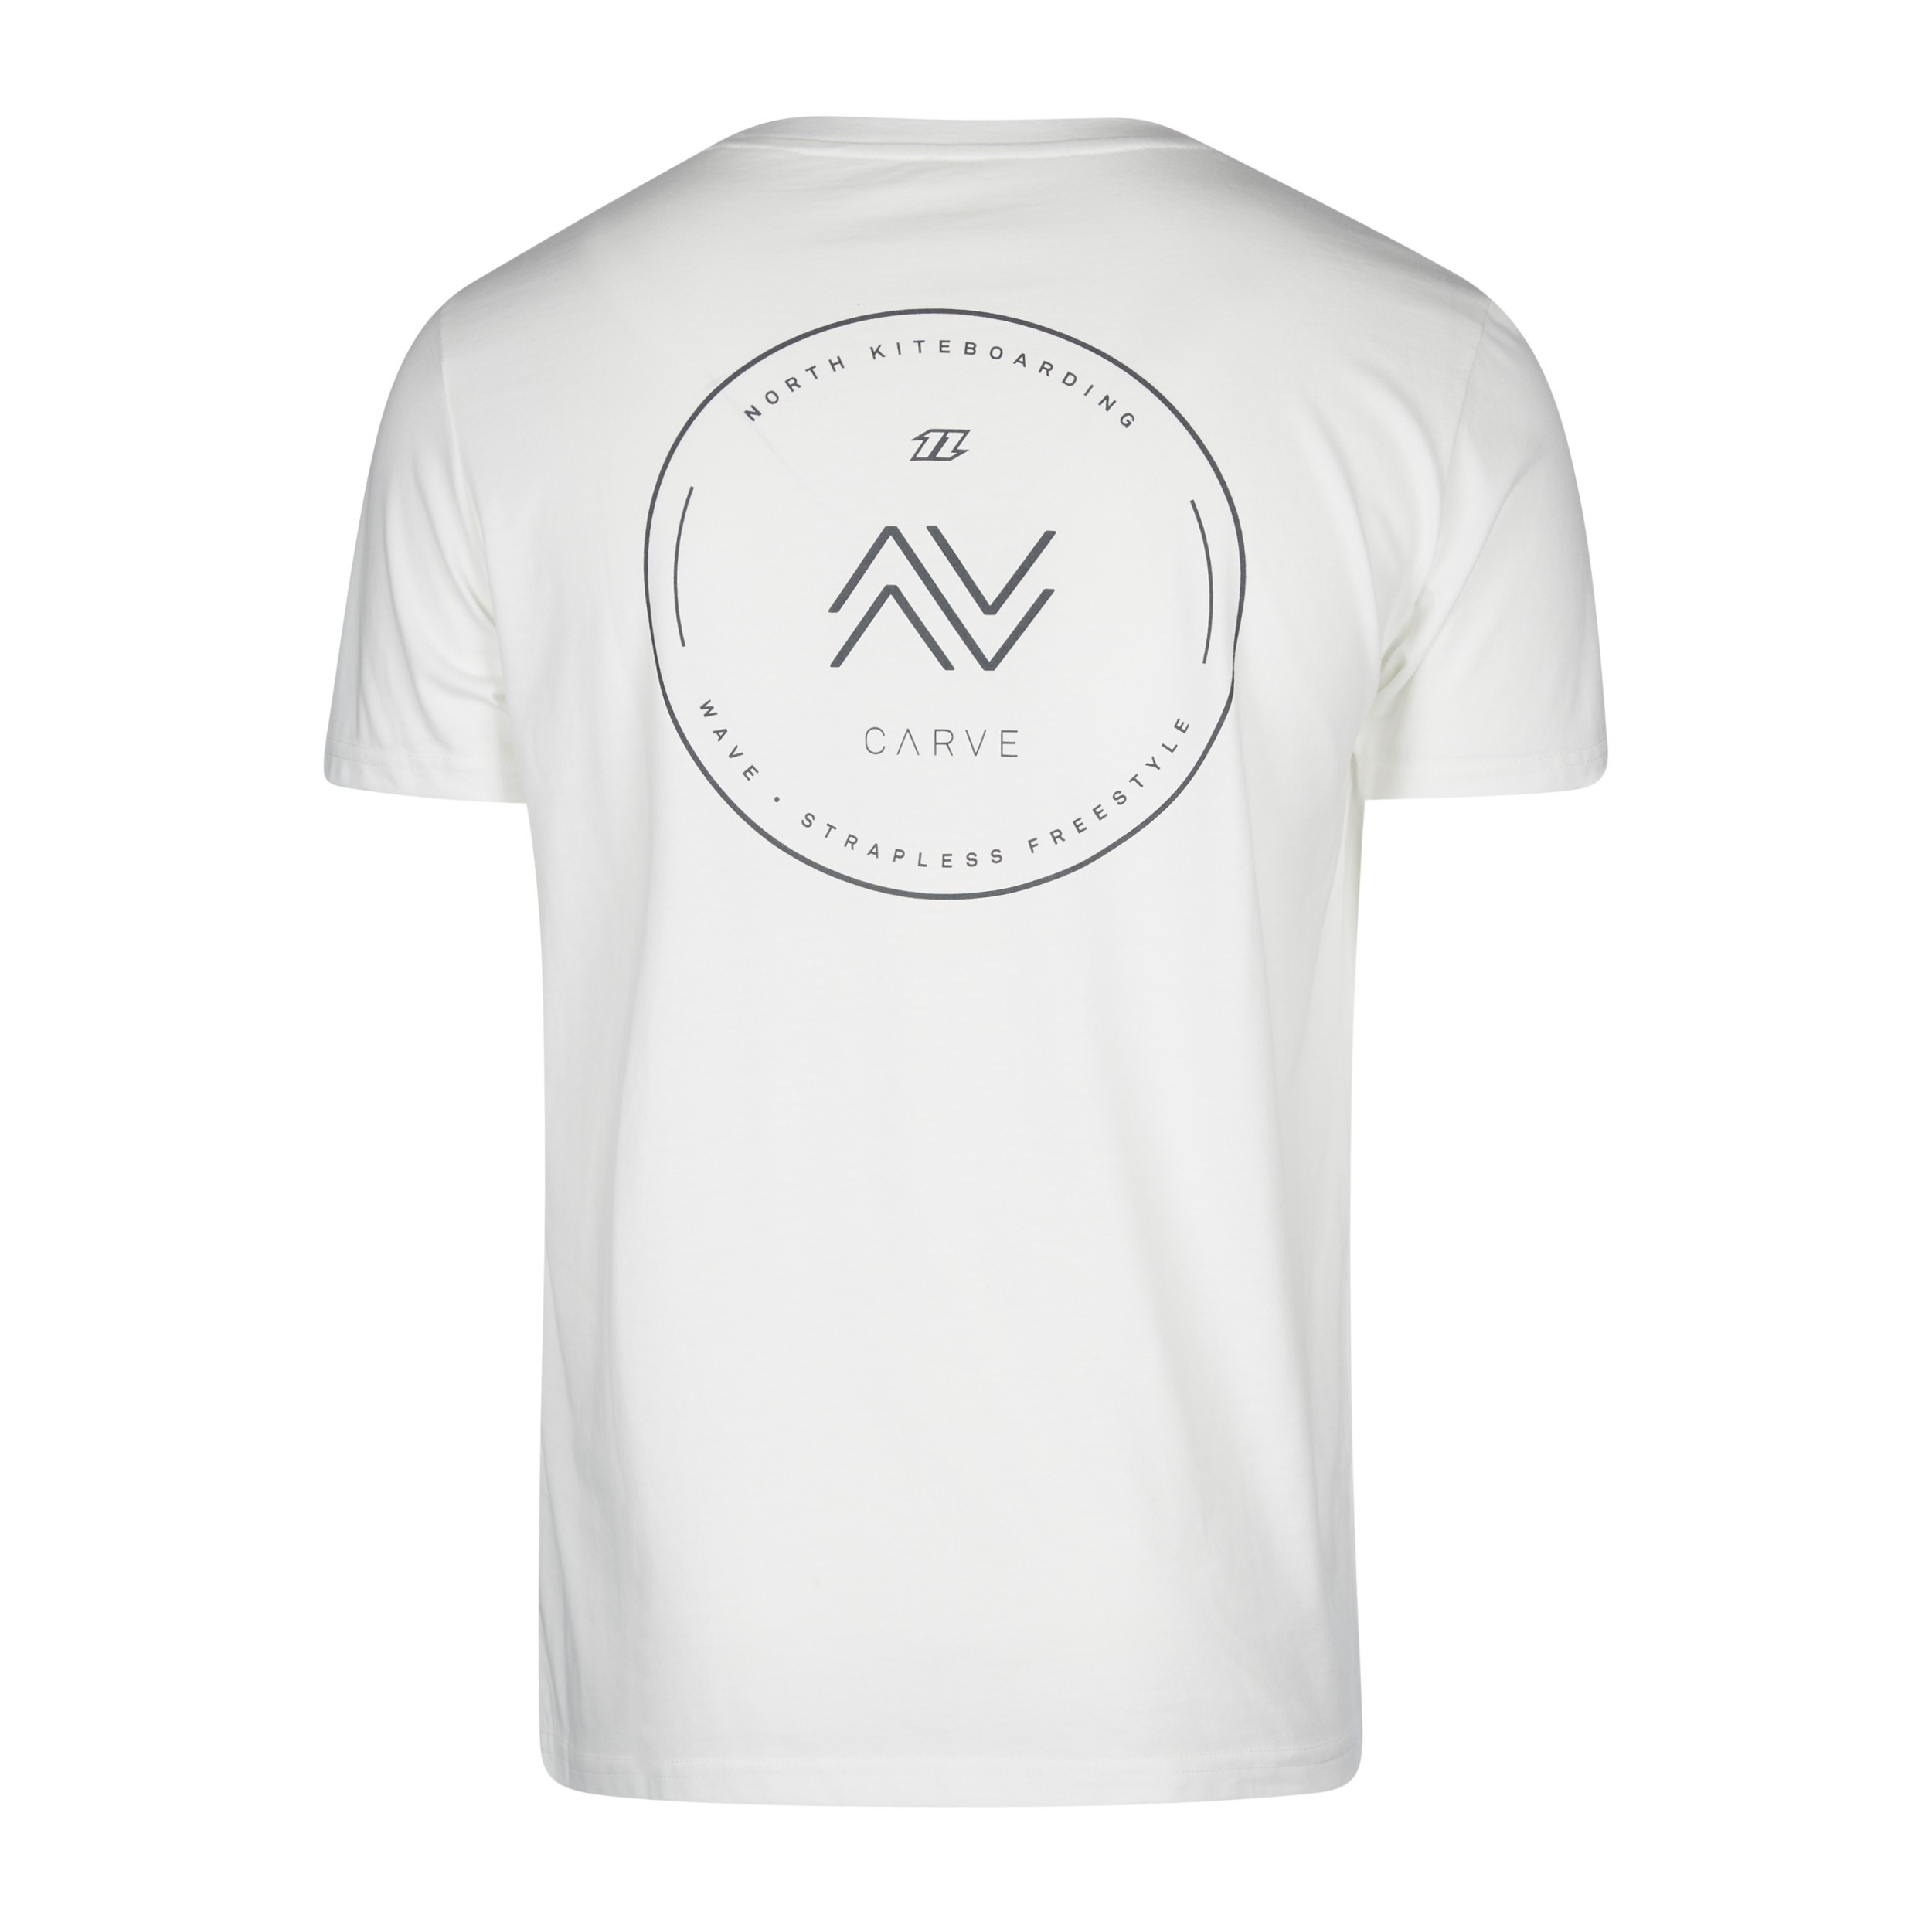 North Kiteboarding Carve Tee Shirt